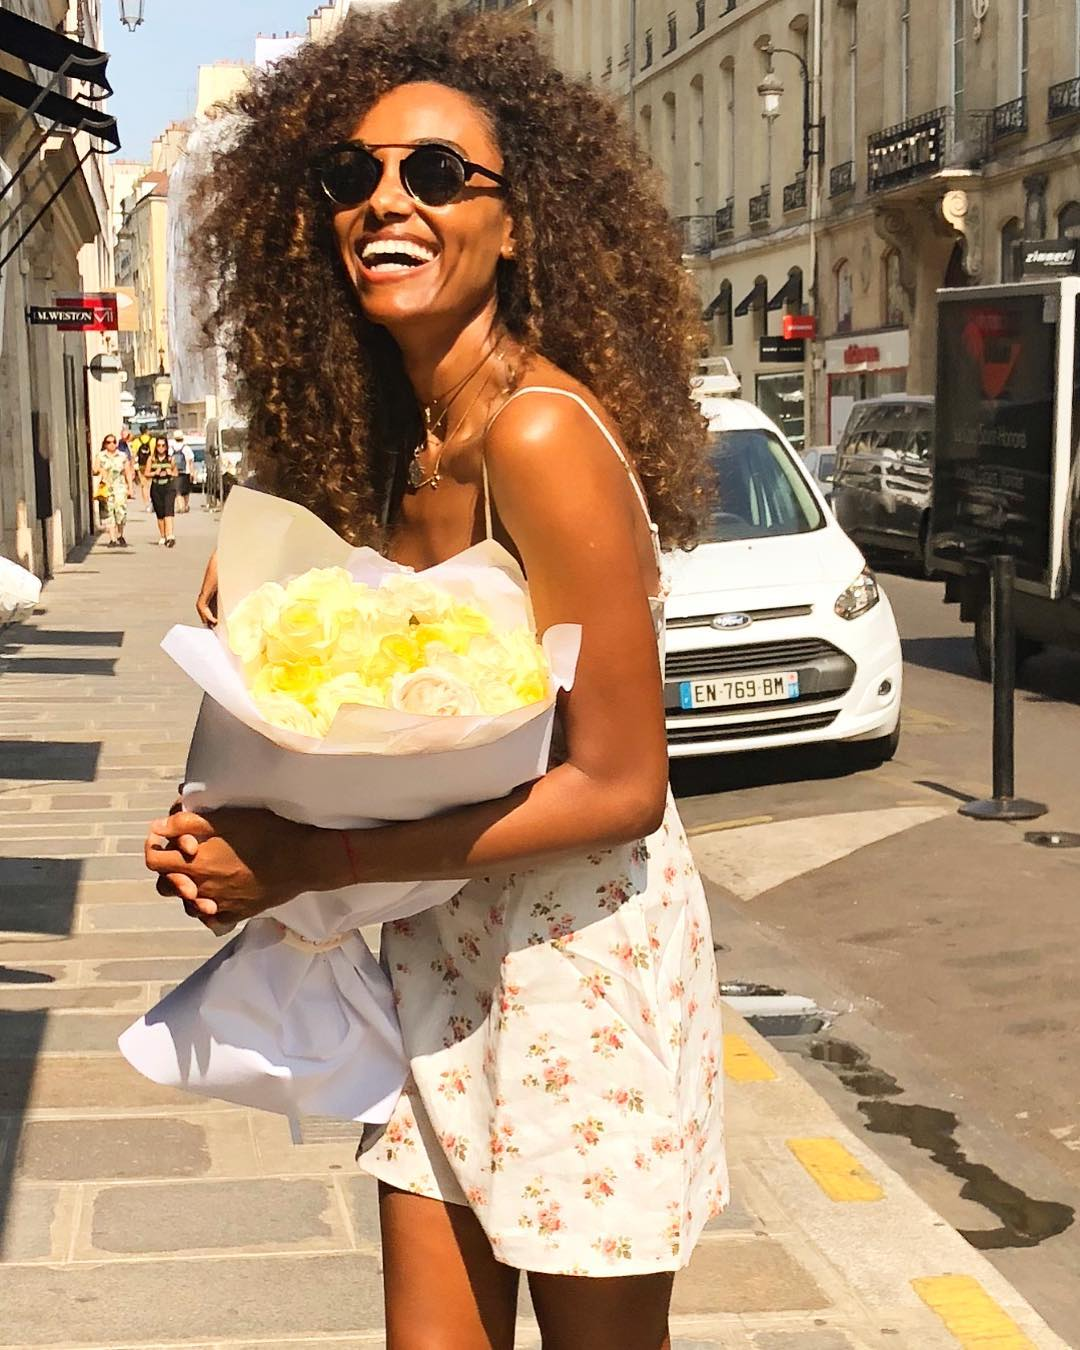 Bekele 5 - Check out Tyler Perry's stunning Ethiopian baby mama Bekele